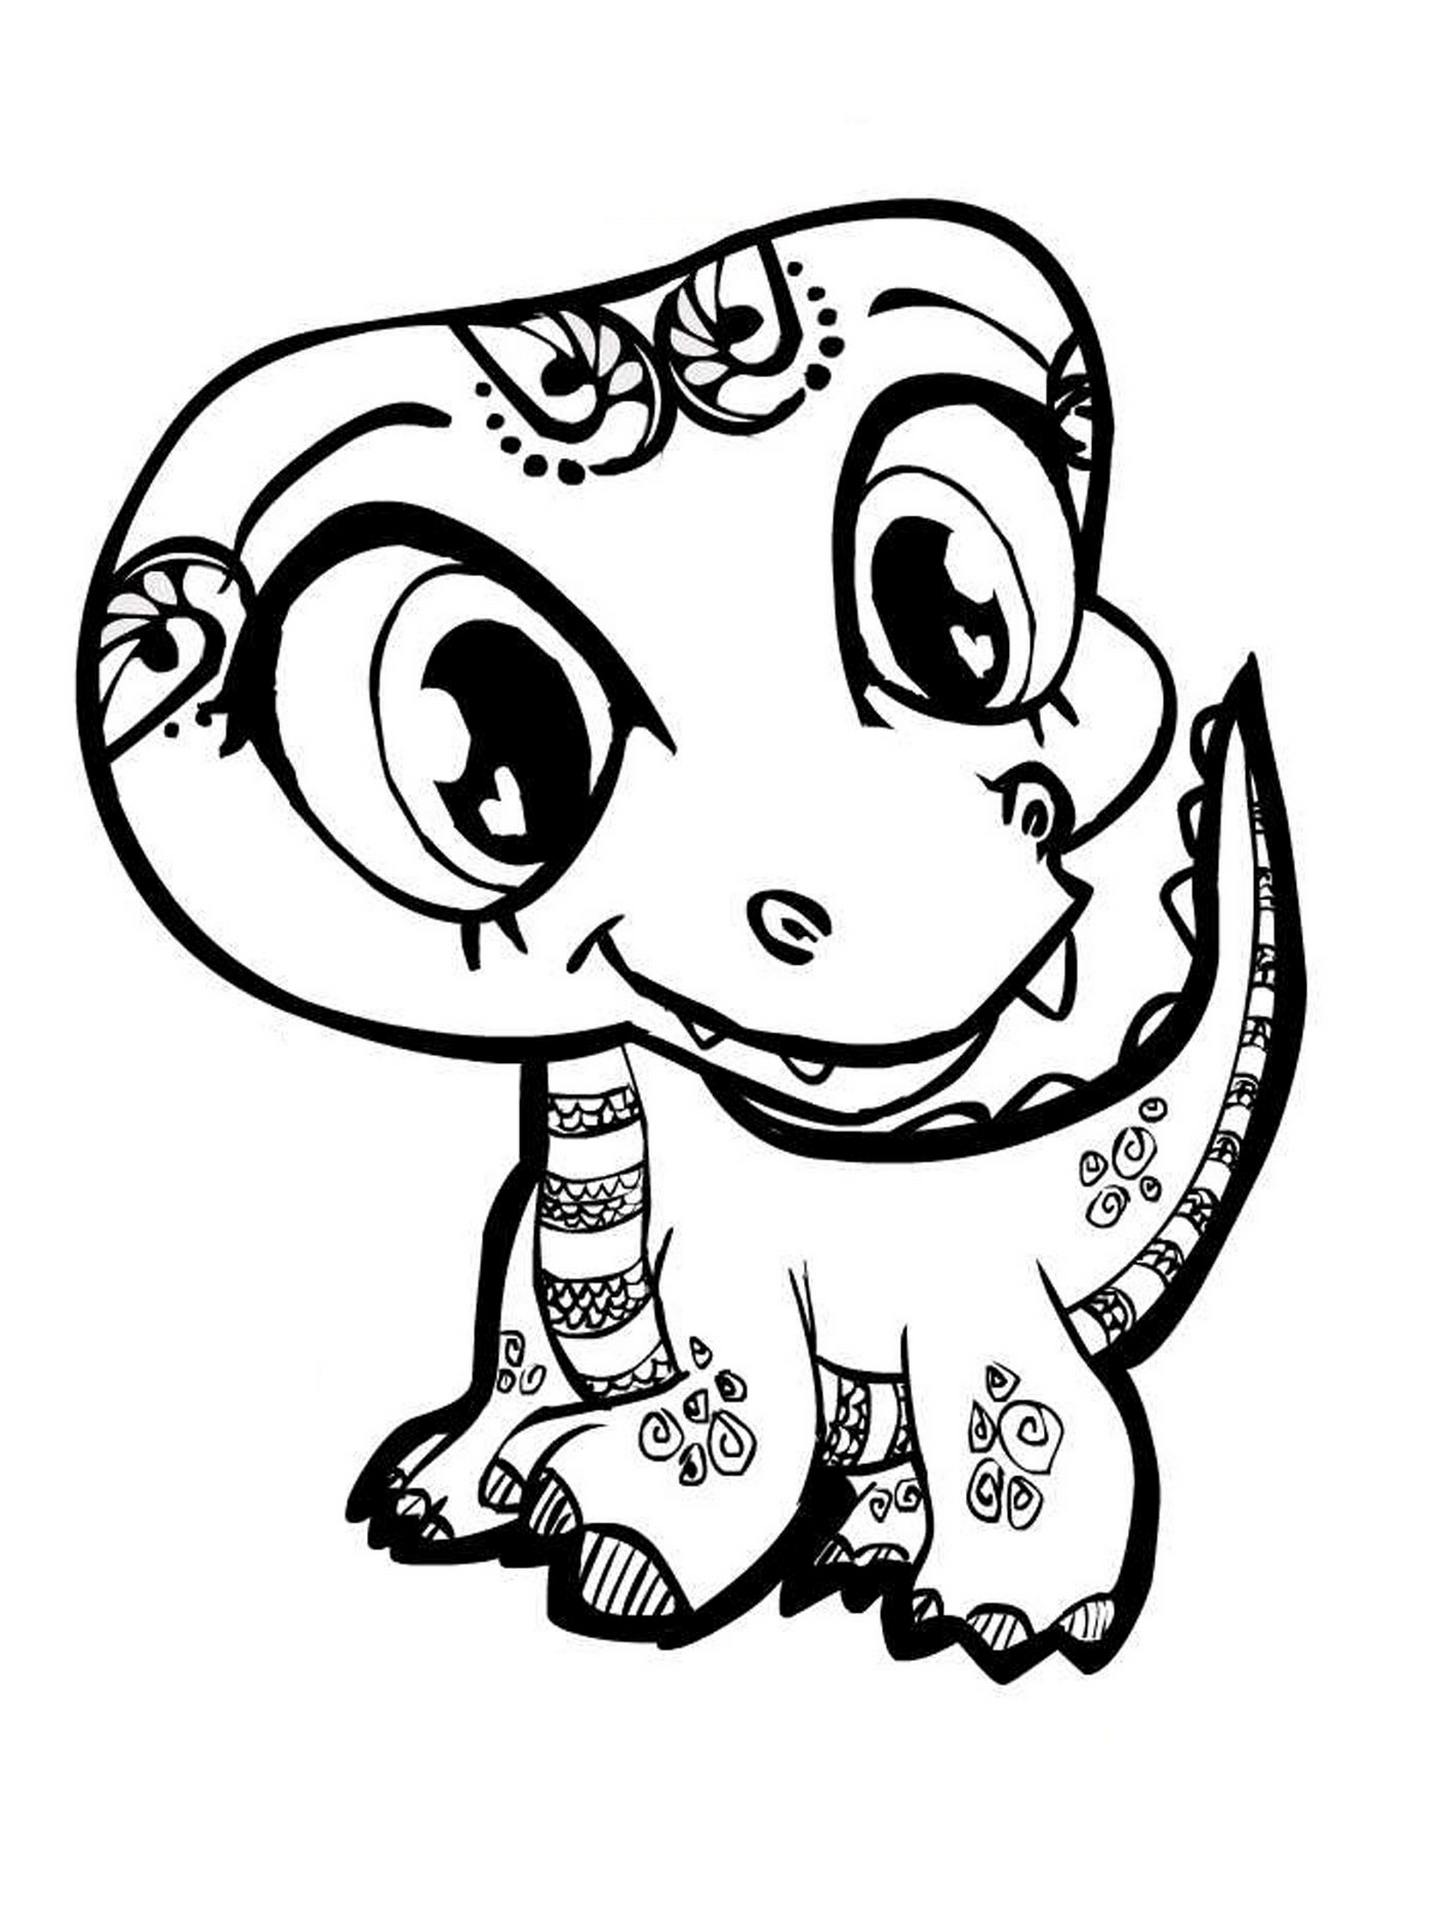 Coloring Pages Teen Color Pages teenager coloring page az pages boy teen for all ages